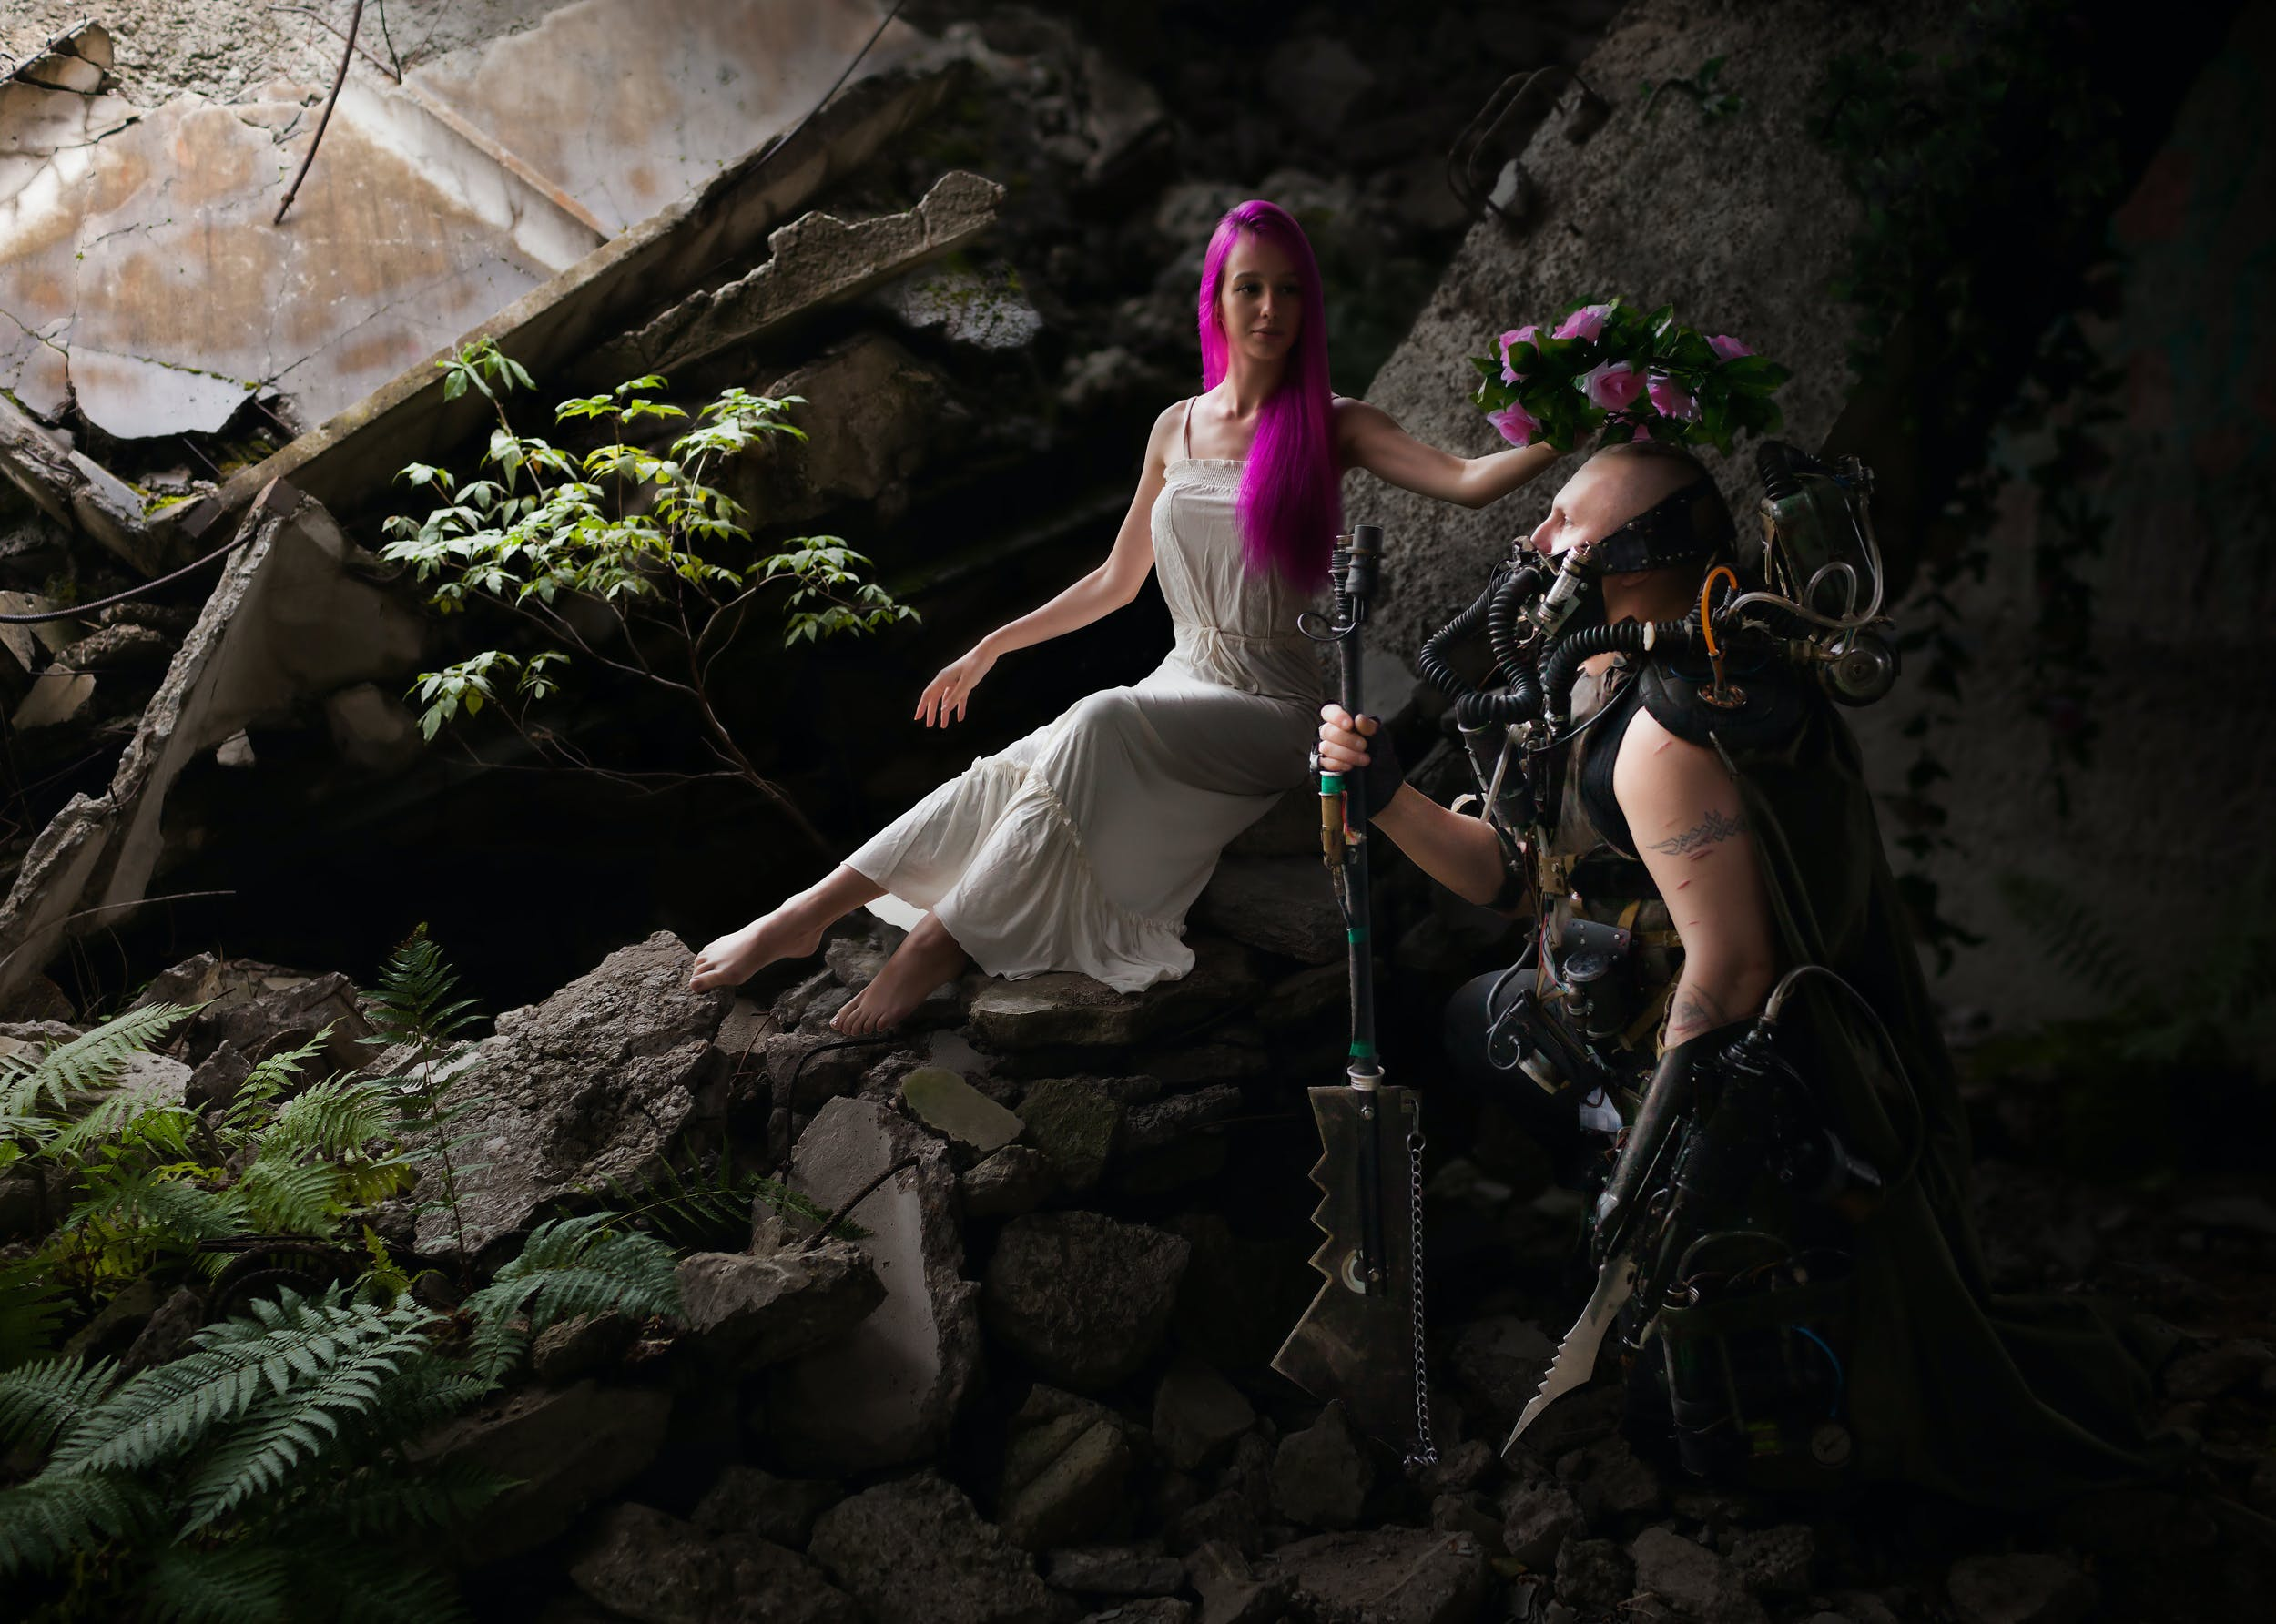 Woman With Purple Hair Wearing White Sleeveless Dress Sitting on the Rocks Holding Pink Floral Headband